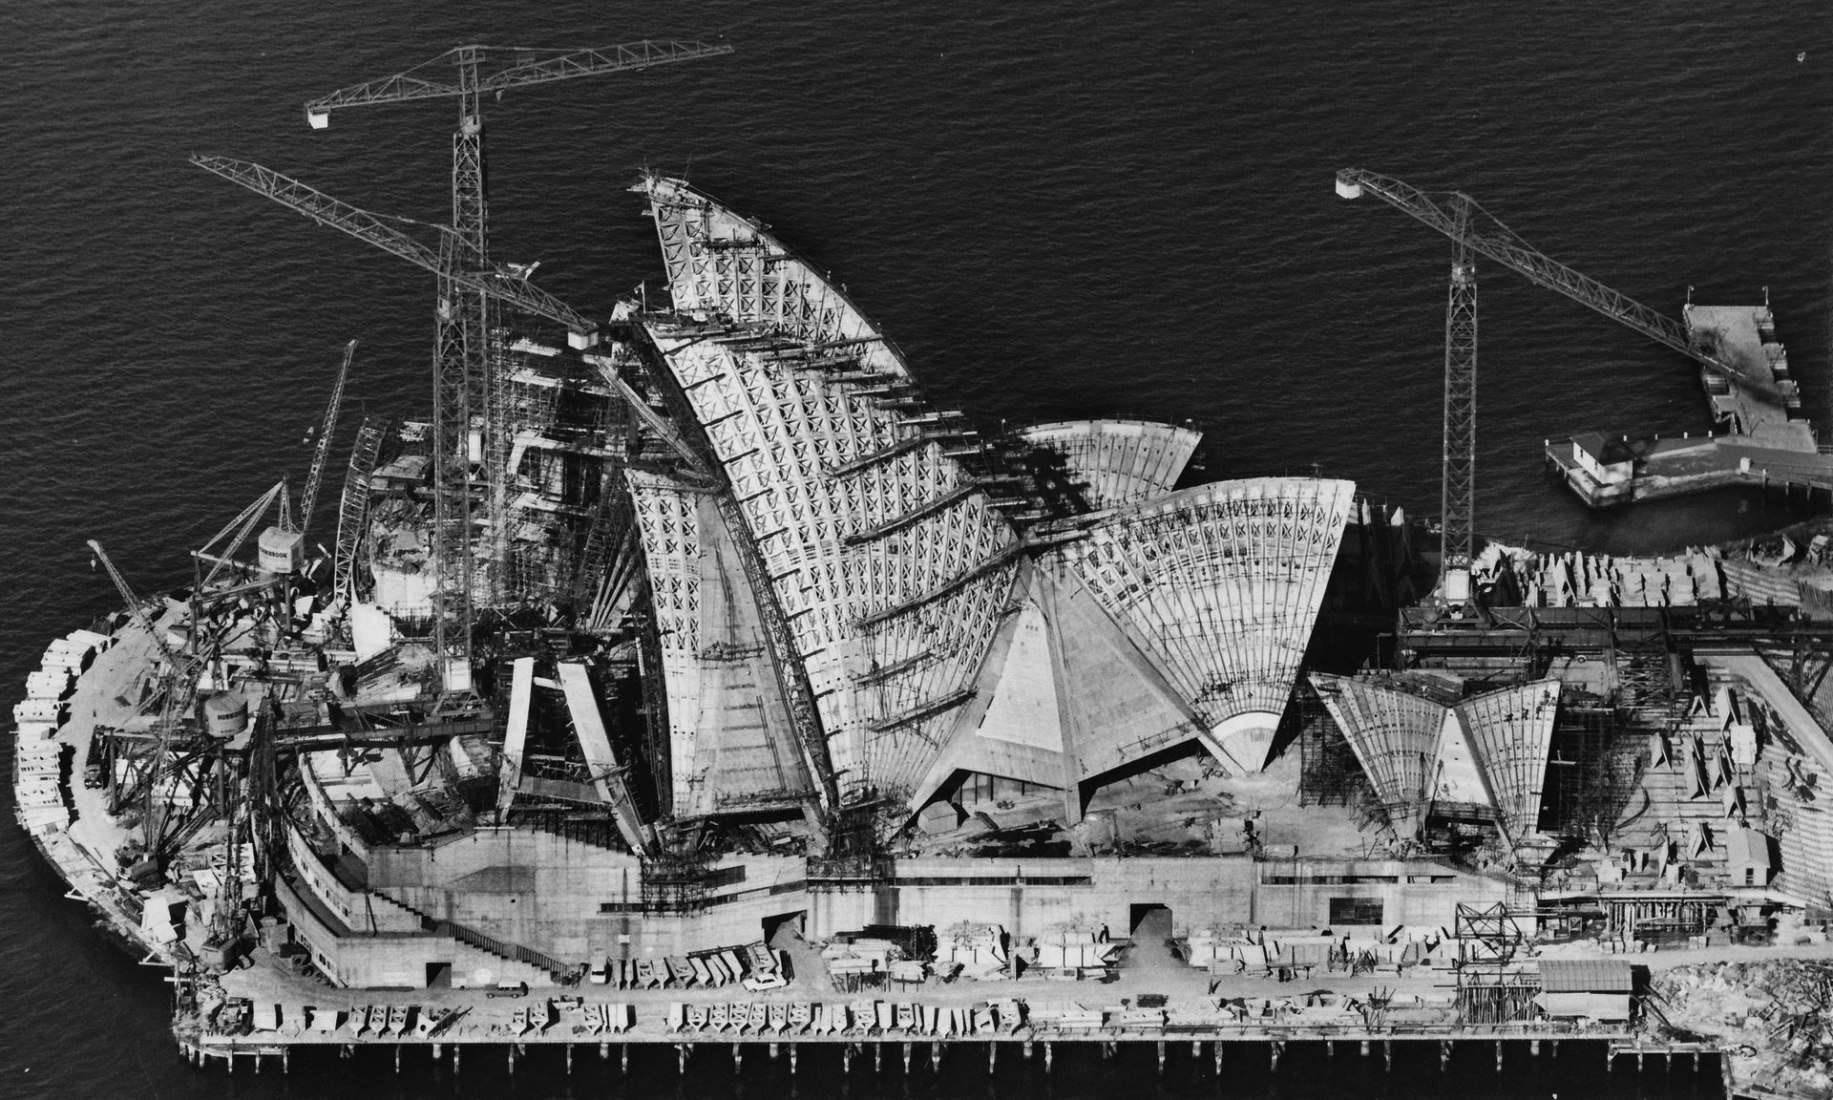 'Made possible by fiendishly complex maths' ... Sydney Opera House under construction in 1966. Photograph: Robert Baudin for Hornibrook Ltd, courtesy Australian Air Photos